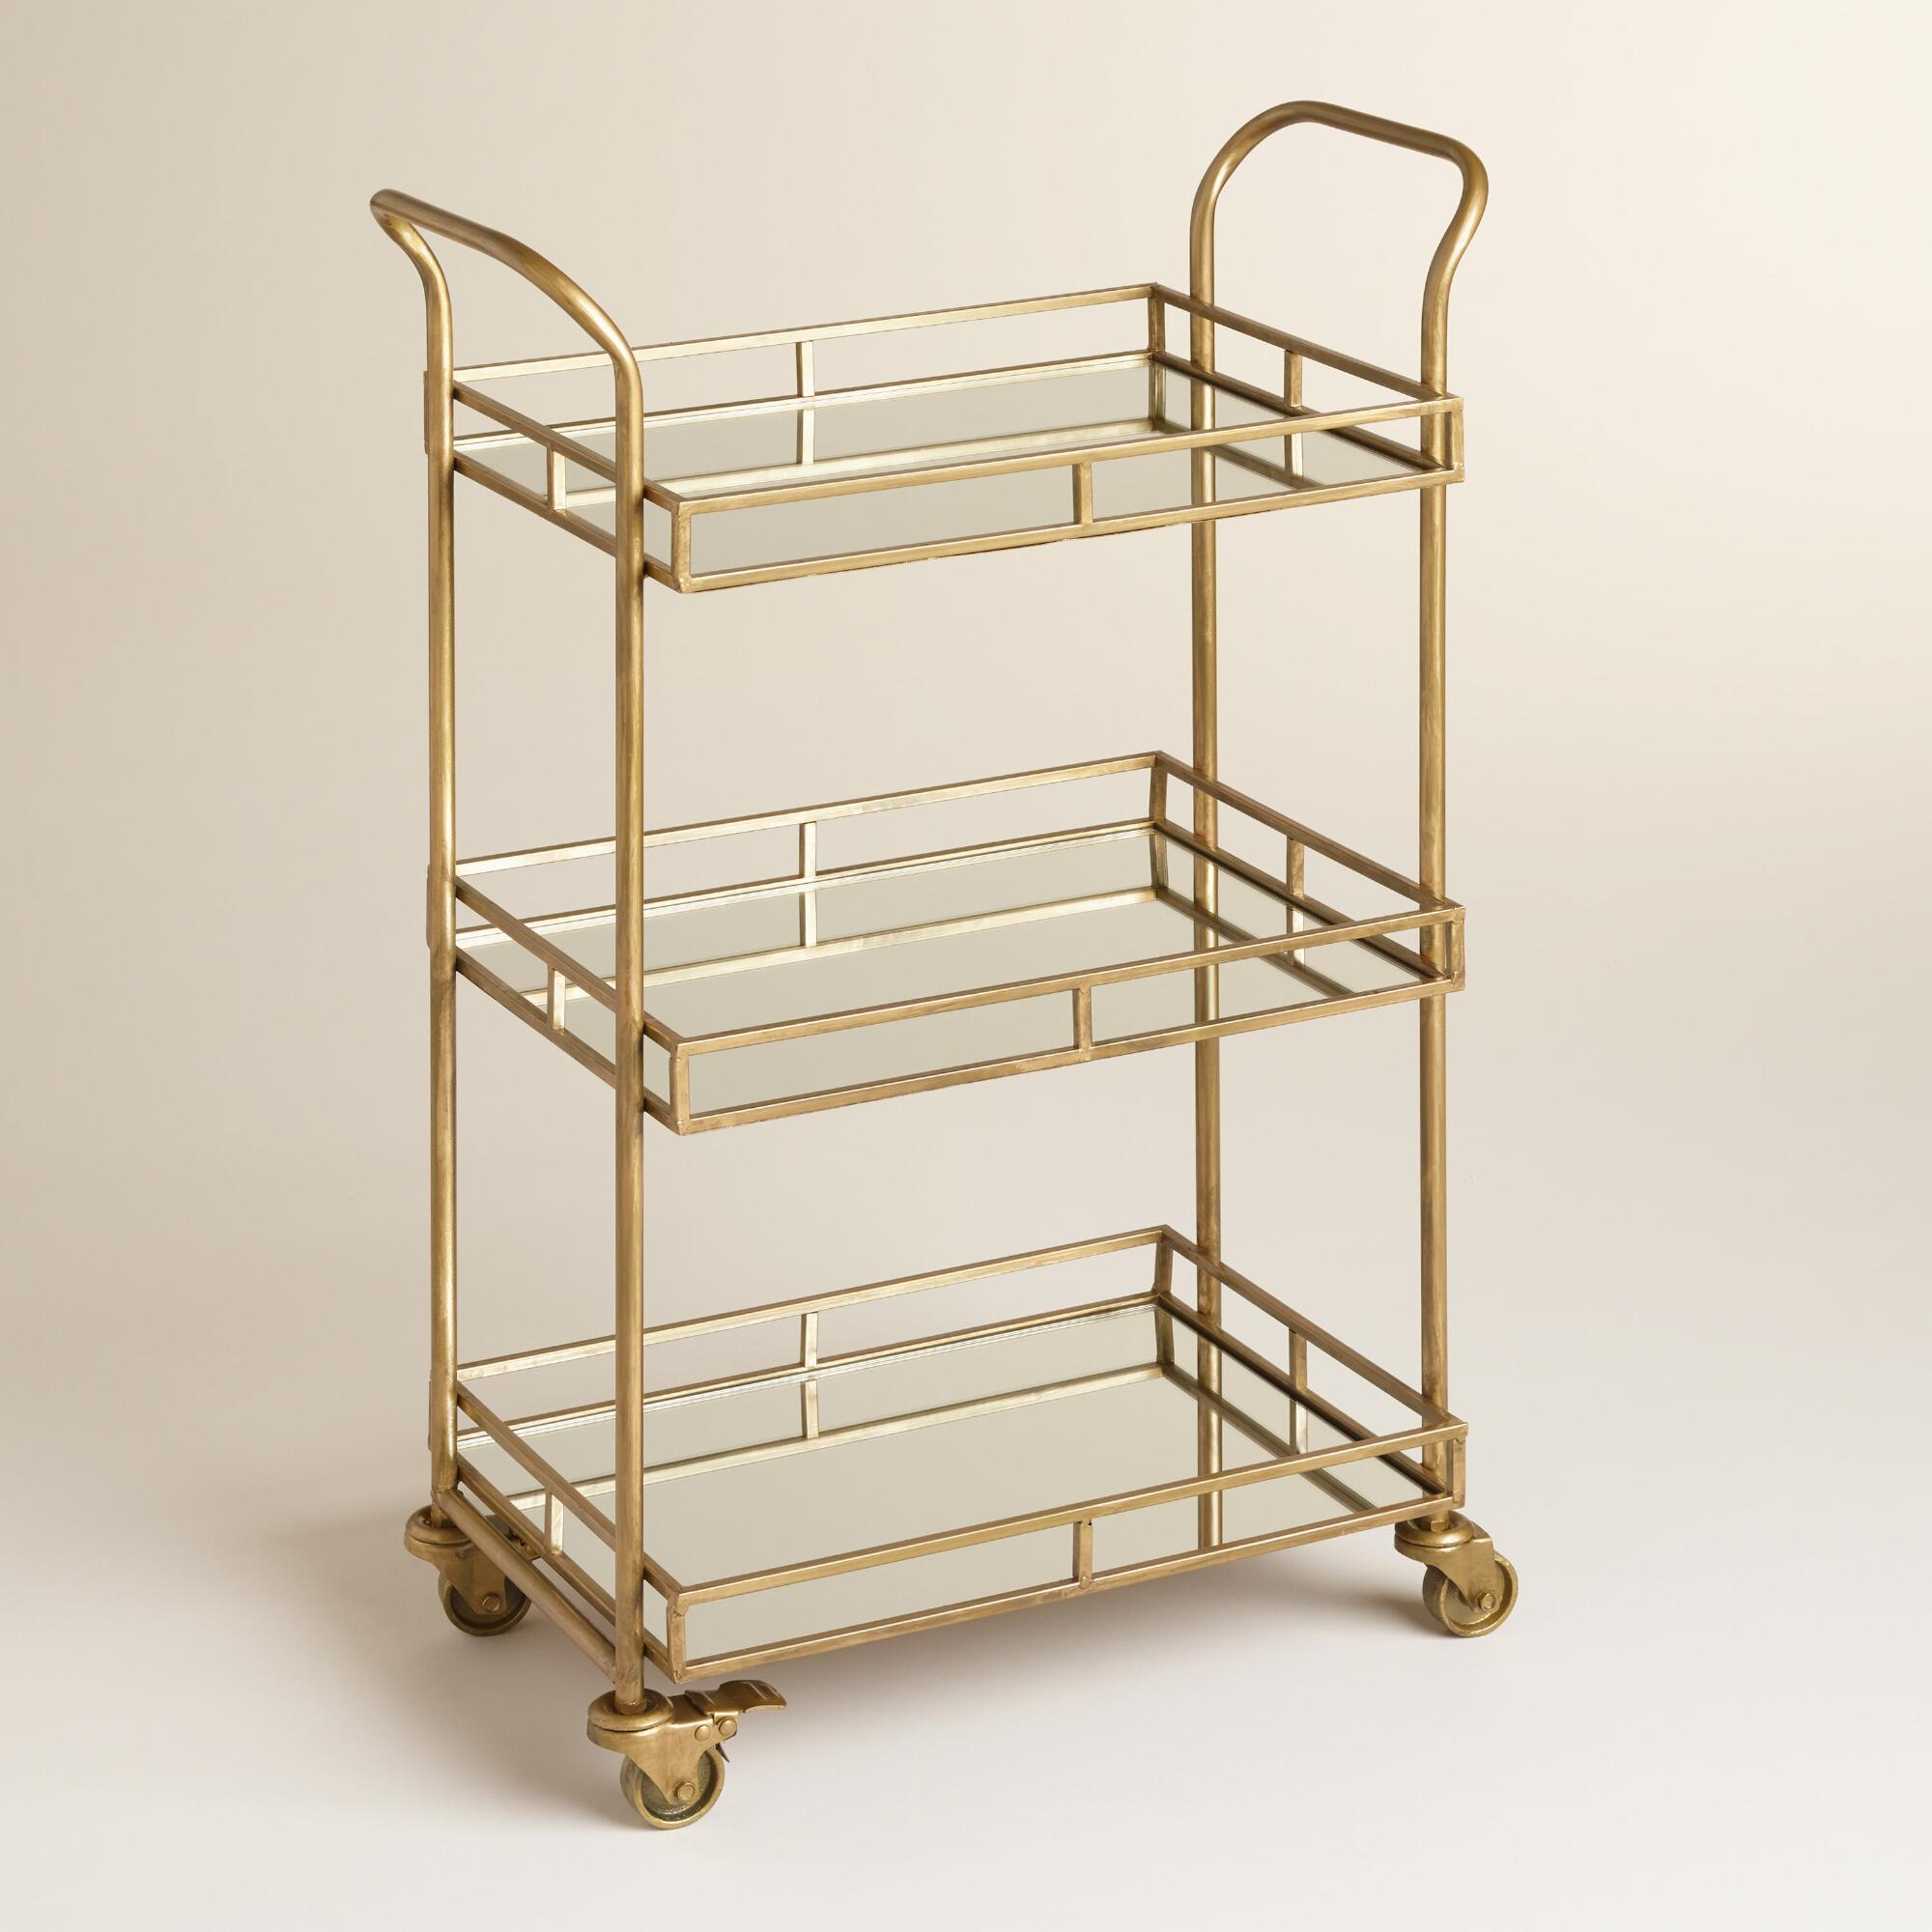 gold cole 3 tier rolling bar cart from cost plus world market. Black Bedroom Furniture Sets. Home Design Ideas